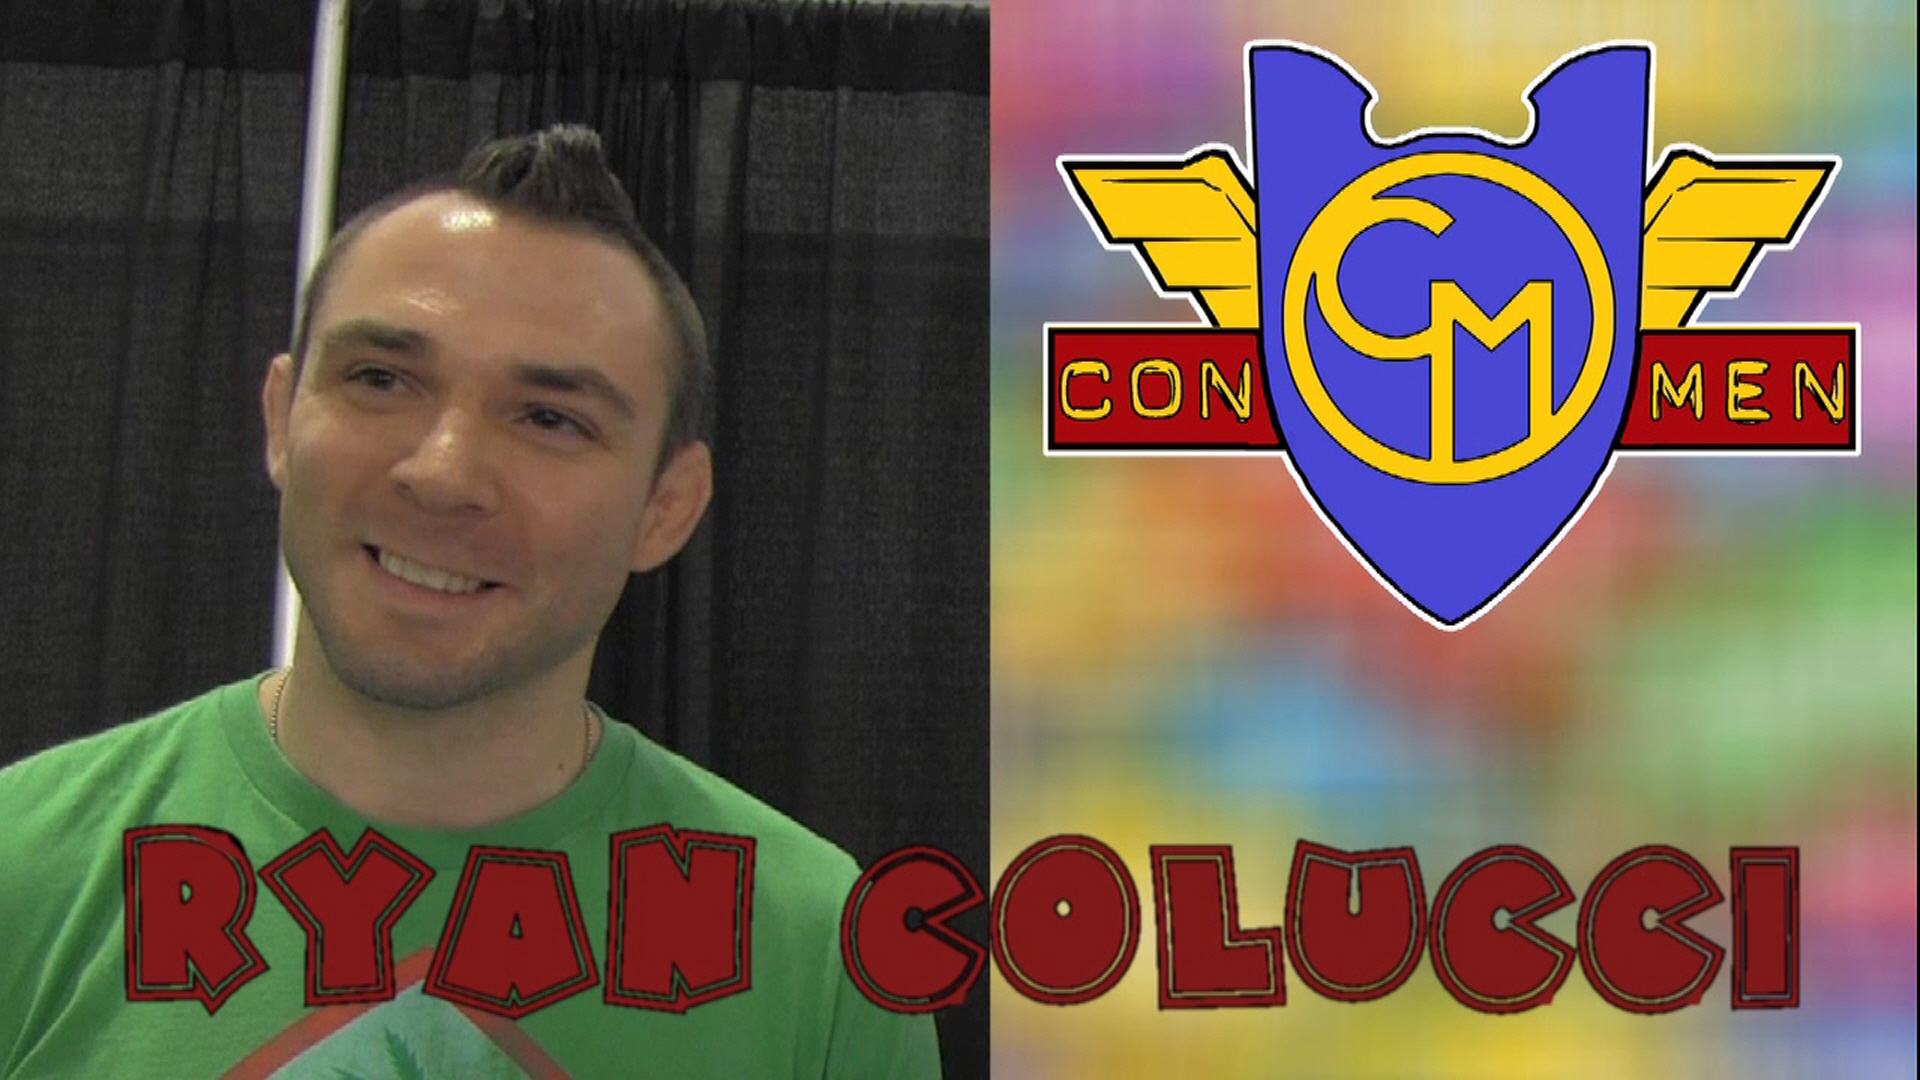 Con Men Interviews: Ryan Colucci & Zsombor Huszka - Creators of R.E.M.